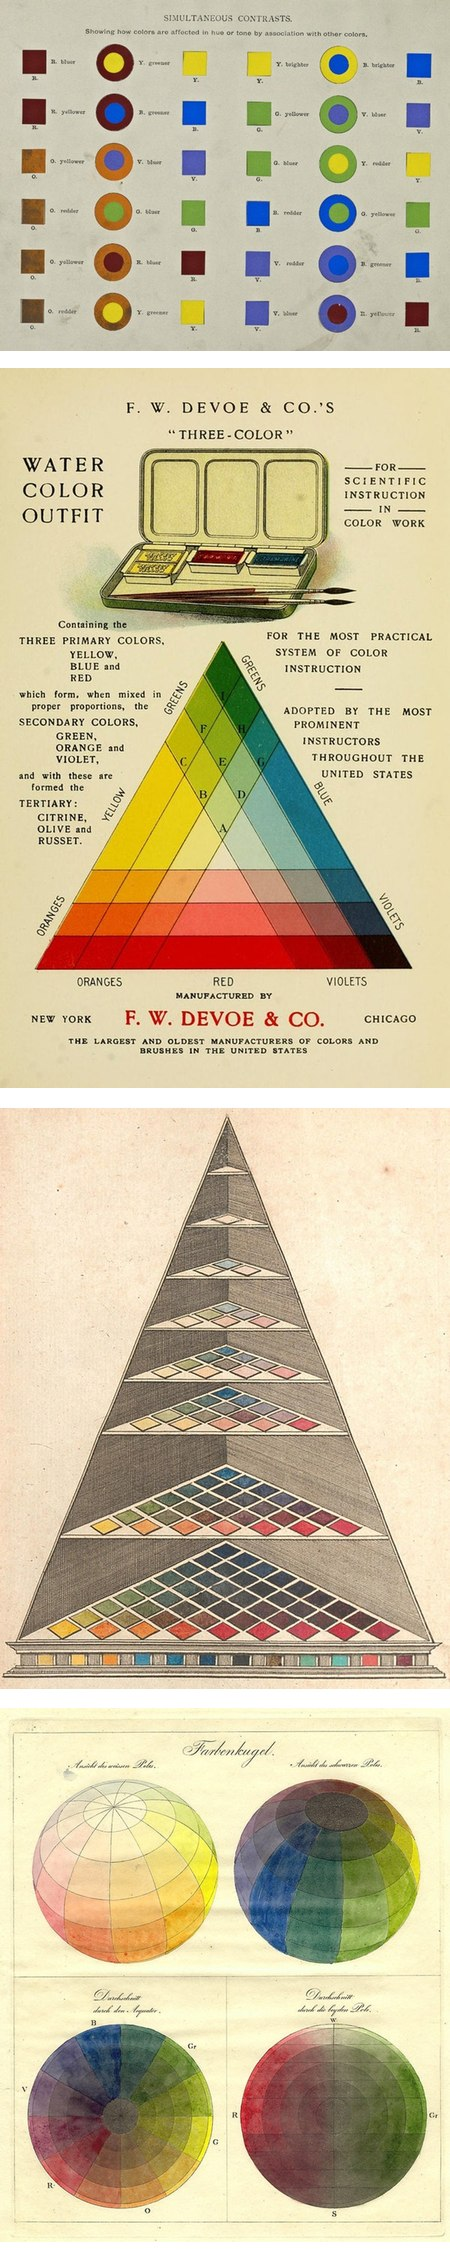 Colour Wheels, Charts, and Tables Through History on Public Domain Review